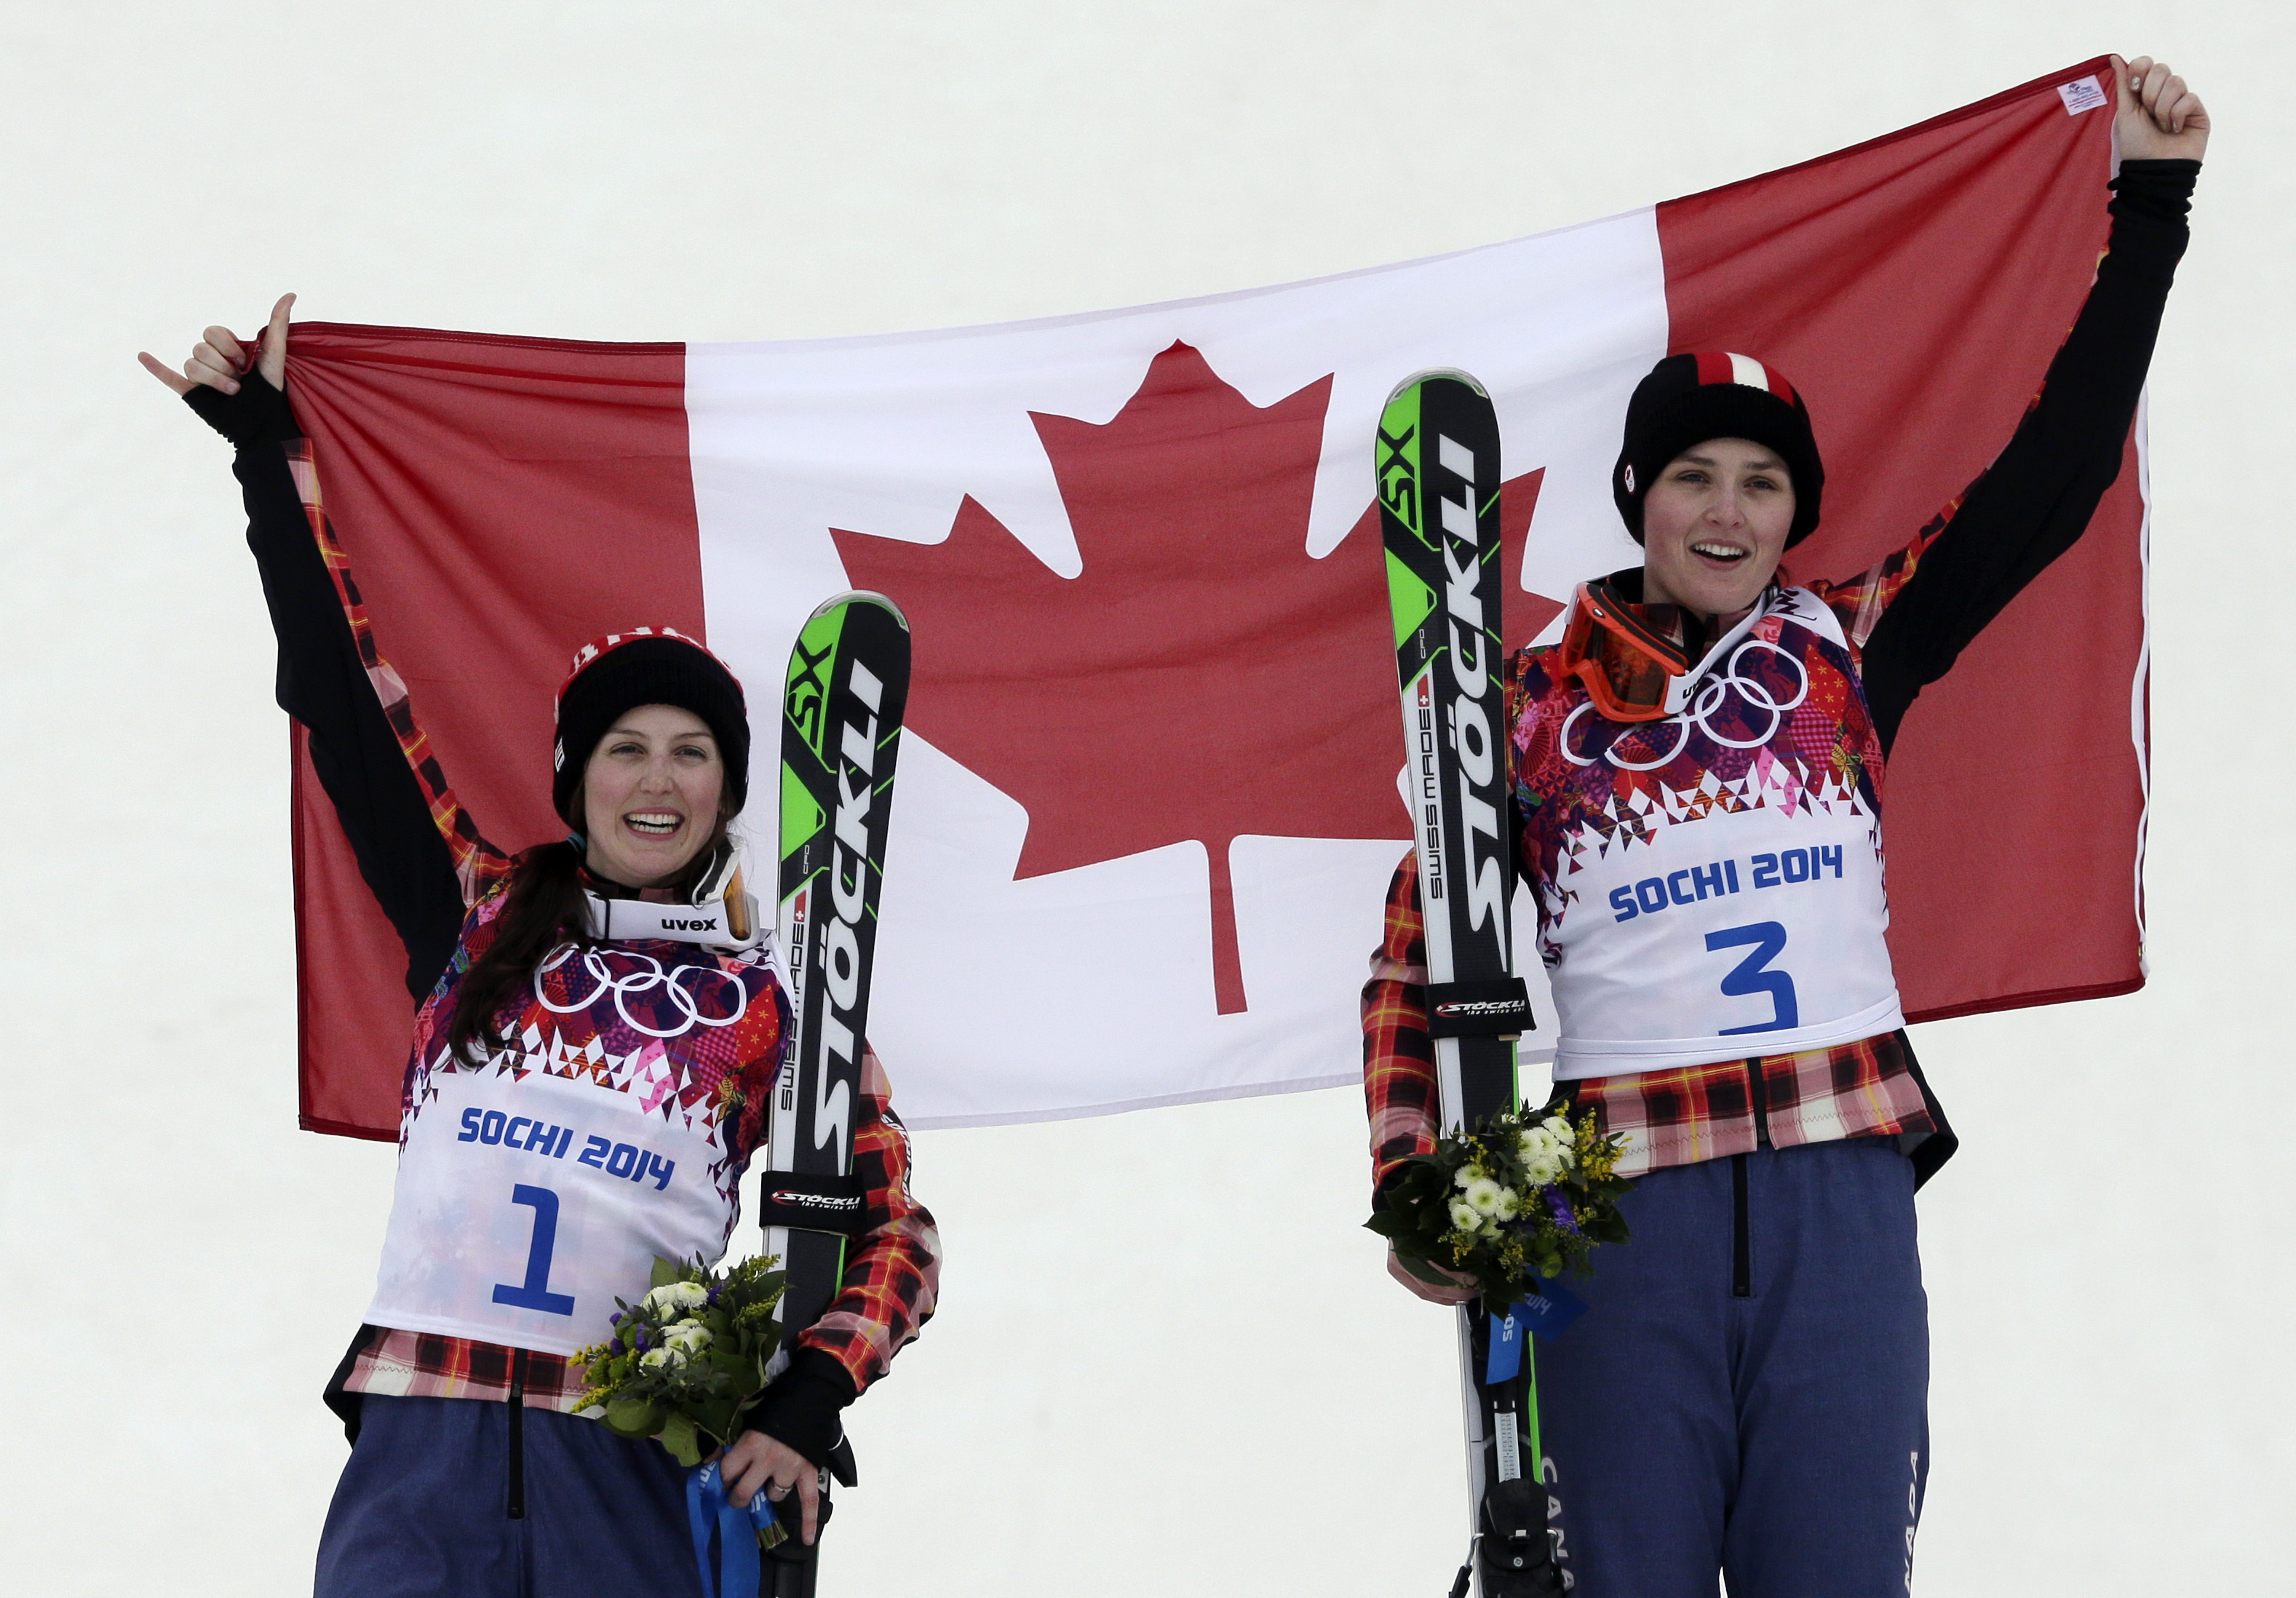 Women's ski cross gold medalist Marielle Thompson of Canada, right, celebrates on the podium with silver medalist and compatriot Kelsey Serwa, left, at the Rosa Khutor Extreme Park, at the 2014 Winter Olympics, Friday, Feb. 21, 2014, in Krasnaya Polyana, Russia. (AP Photo/Andy Wong)